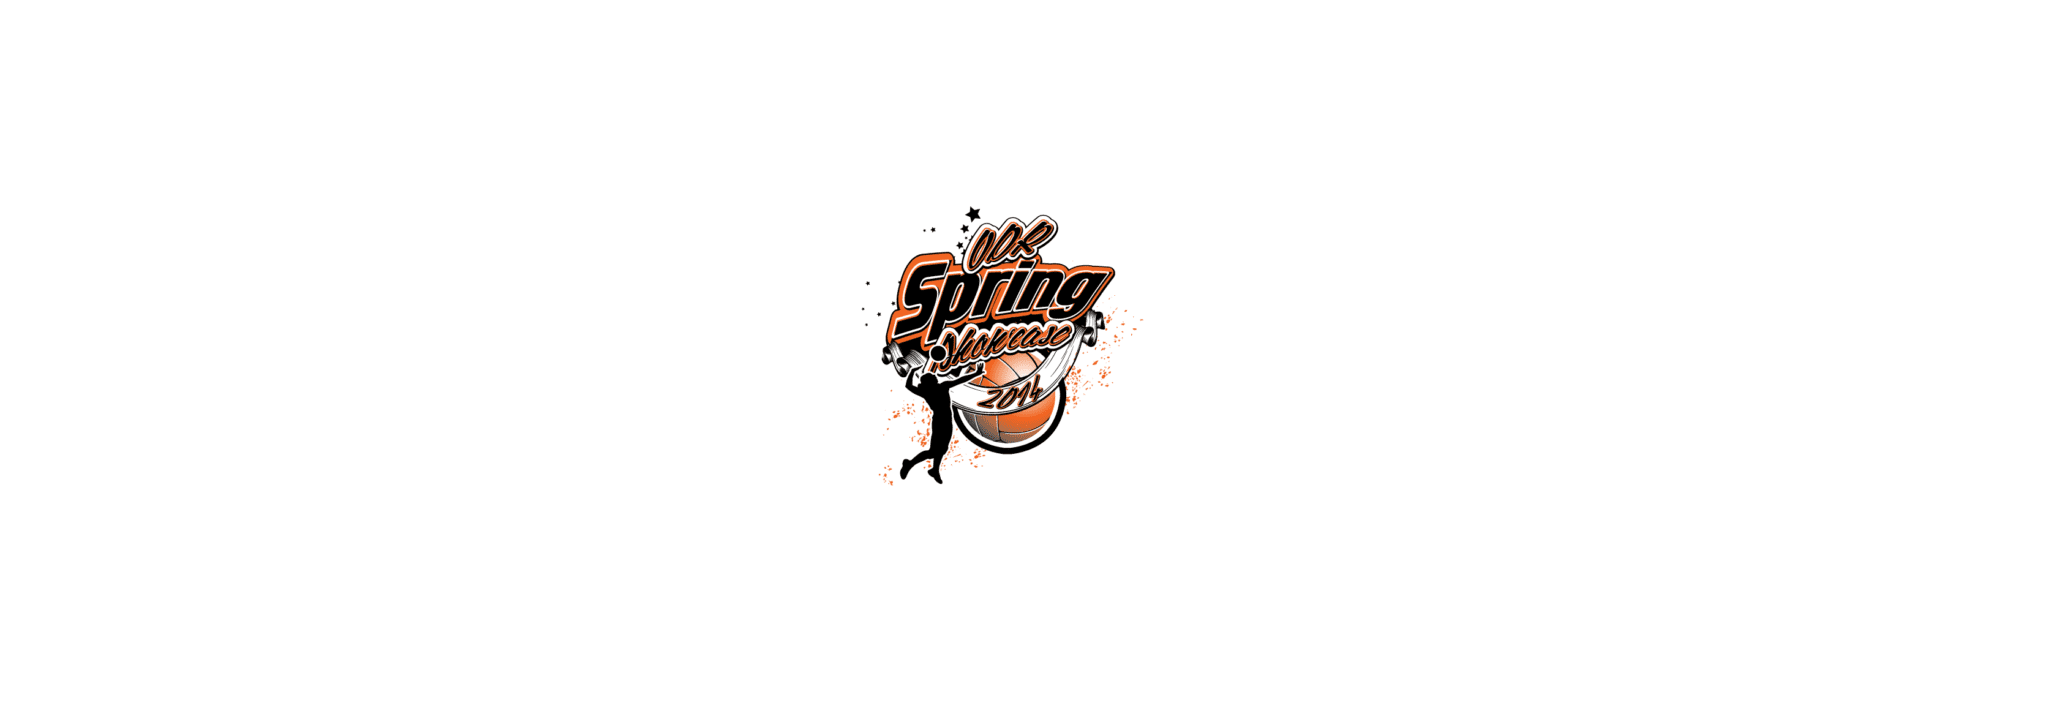 VECTOR LOGO DESIGN FOR PRINT ODR VOLLEYBALL EVENT